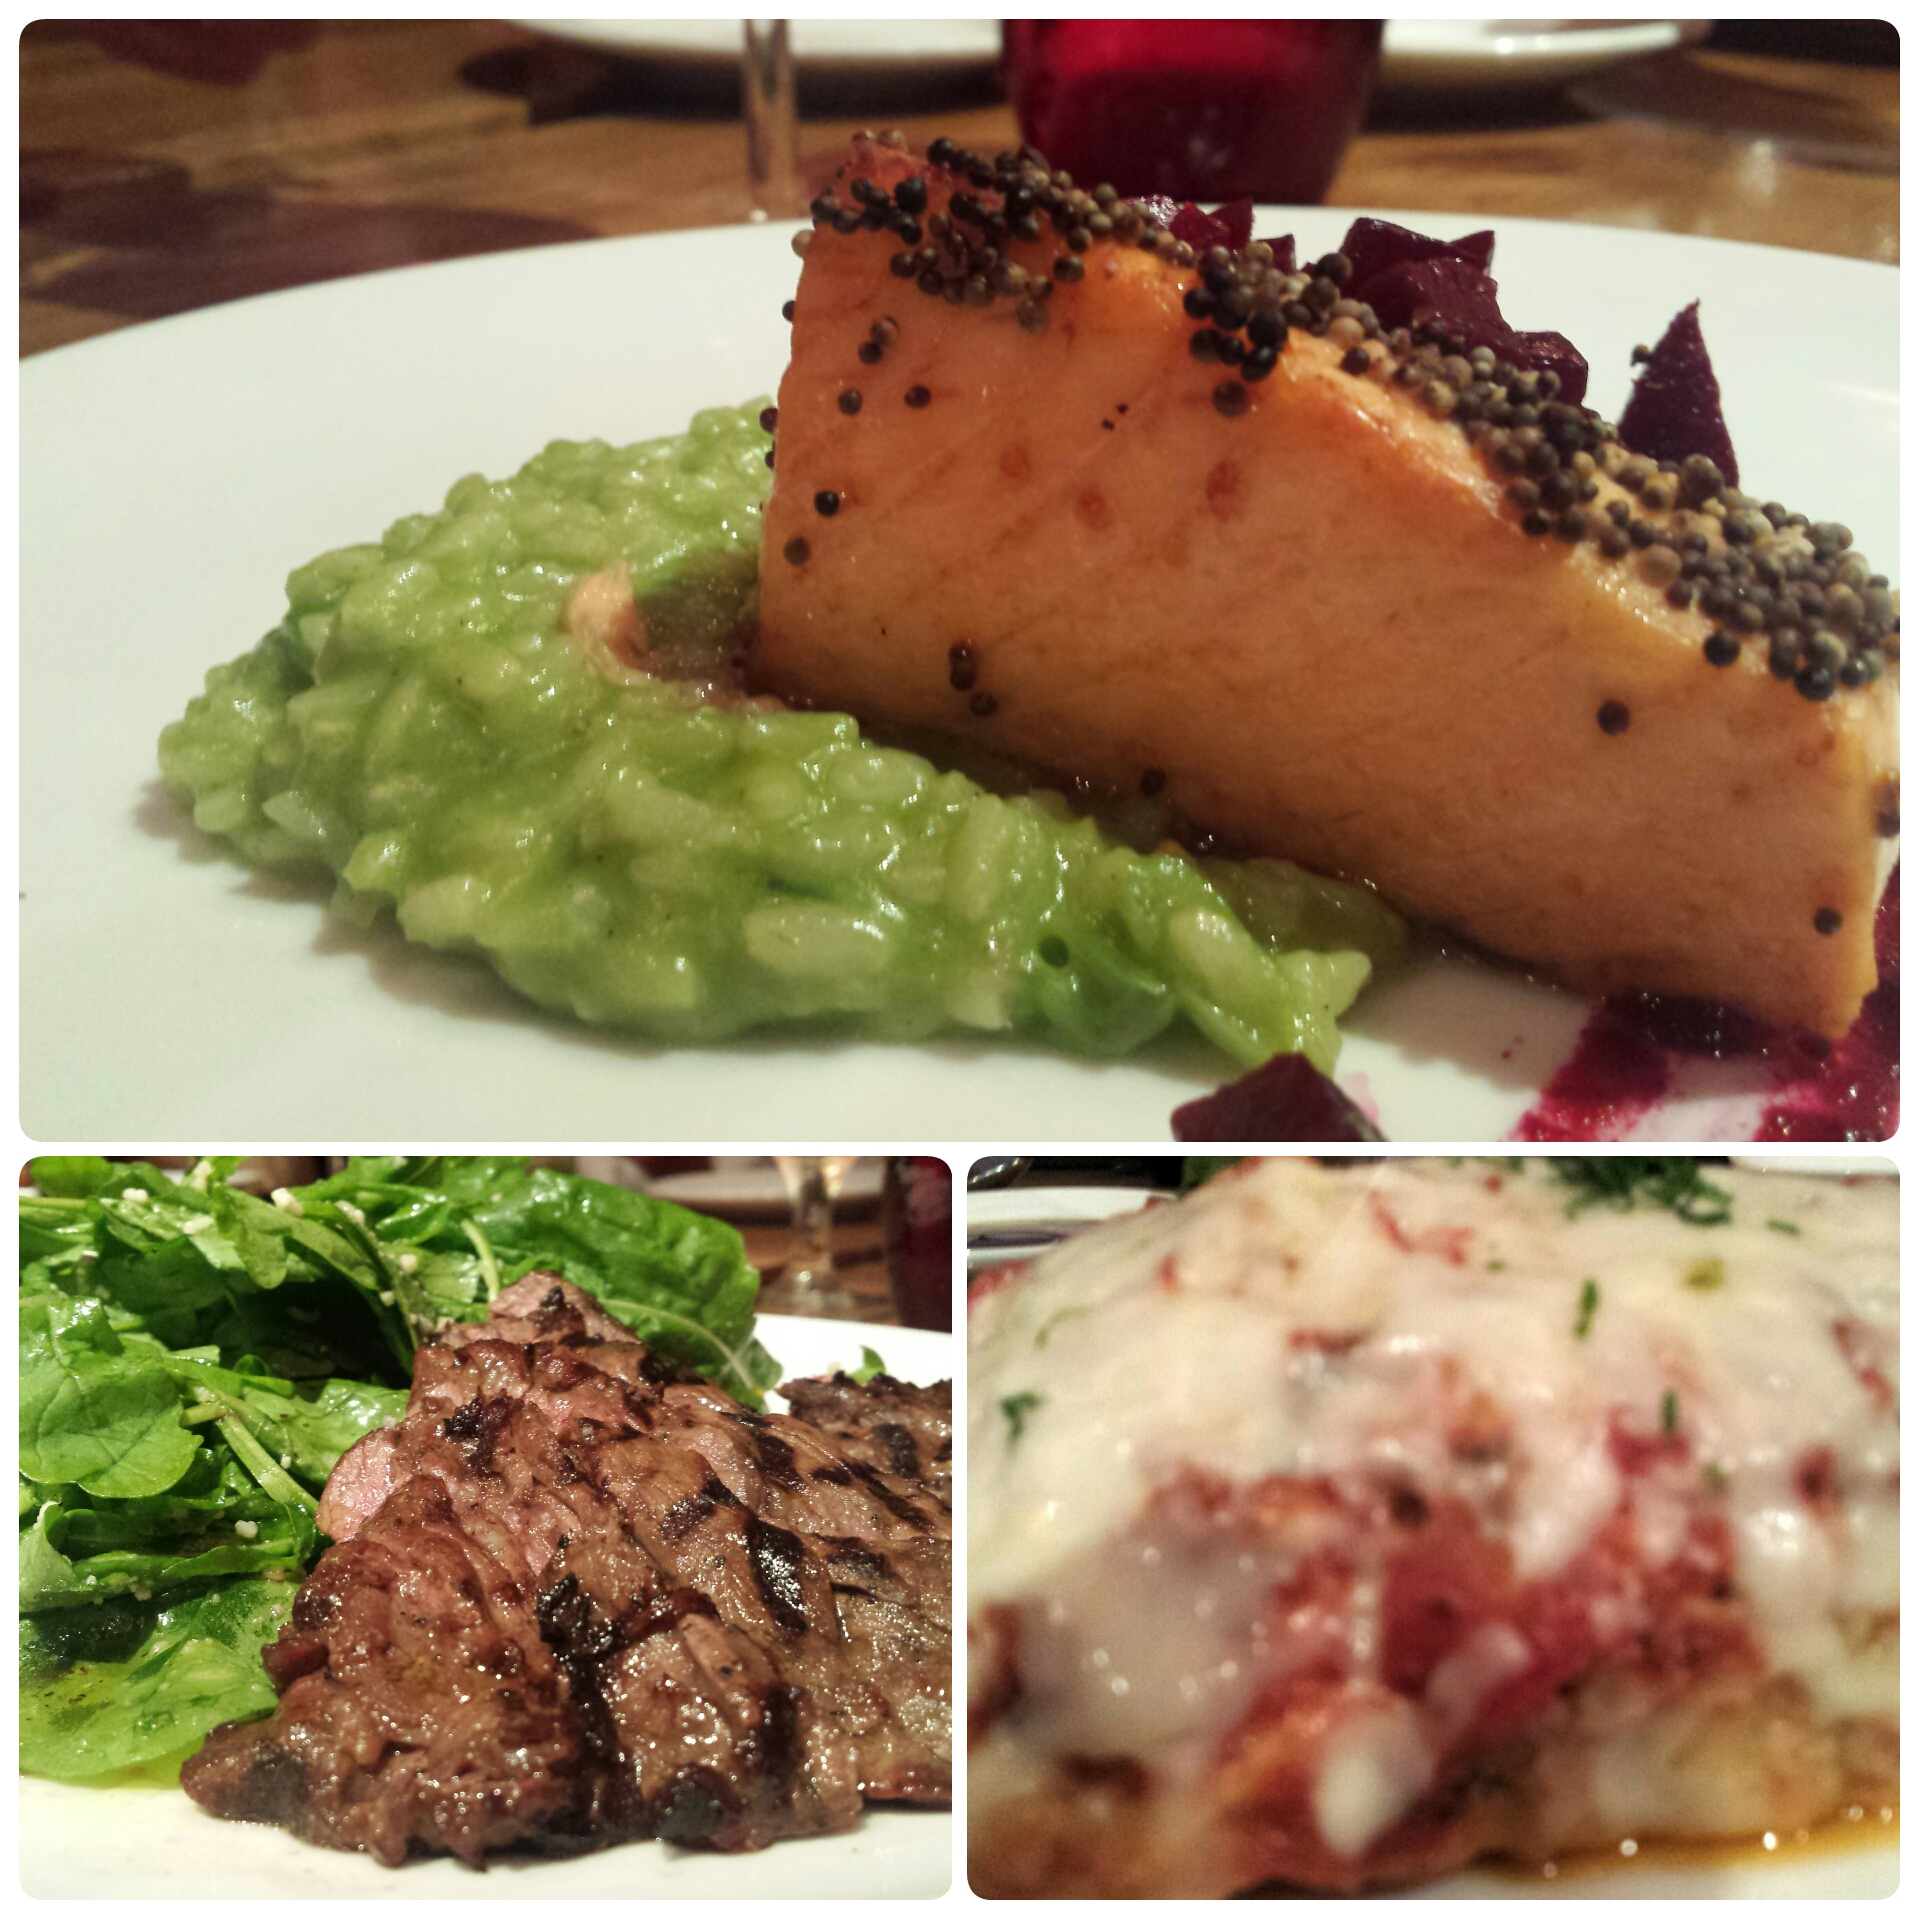 skirt steak, salmon, lasagna